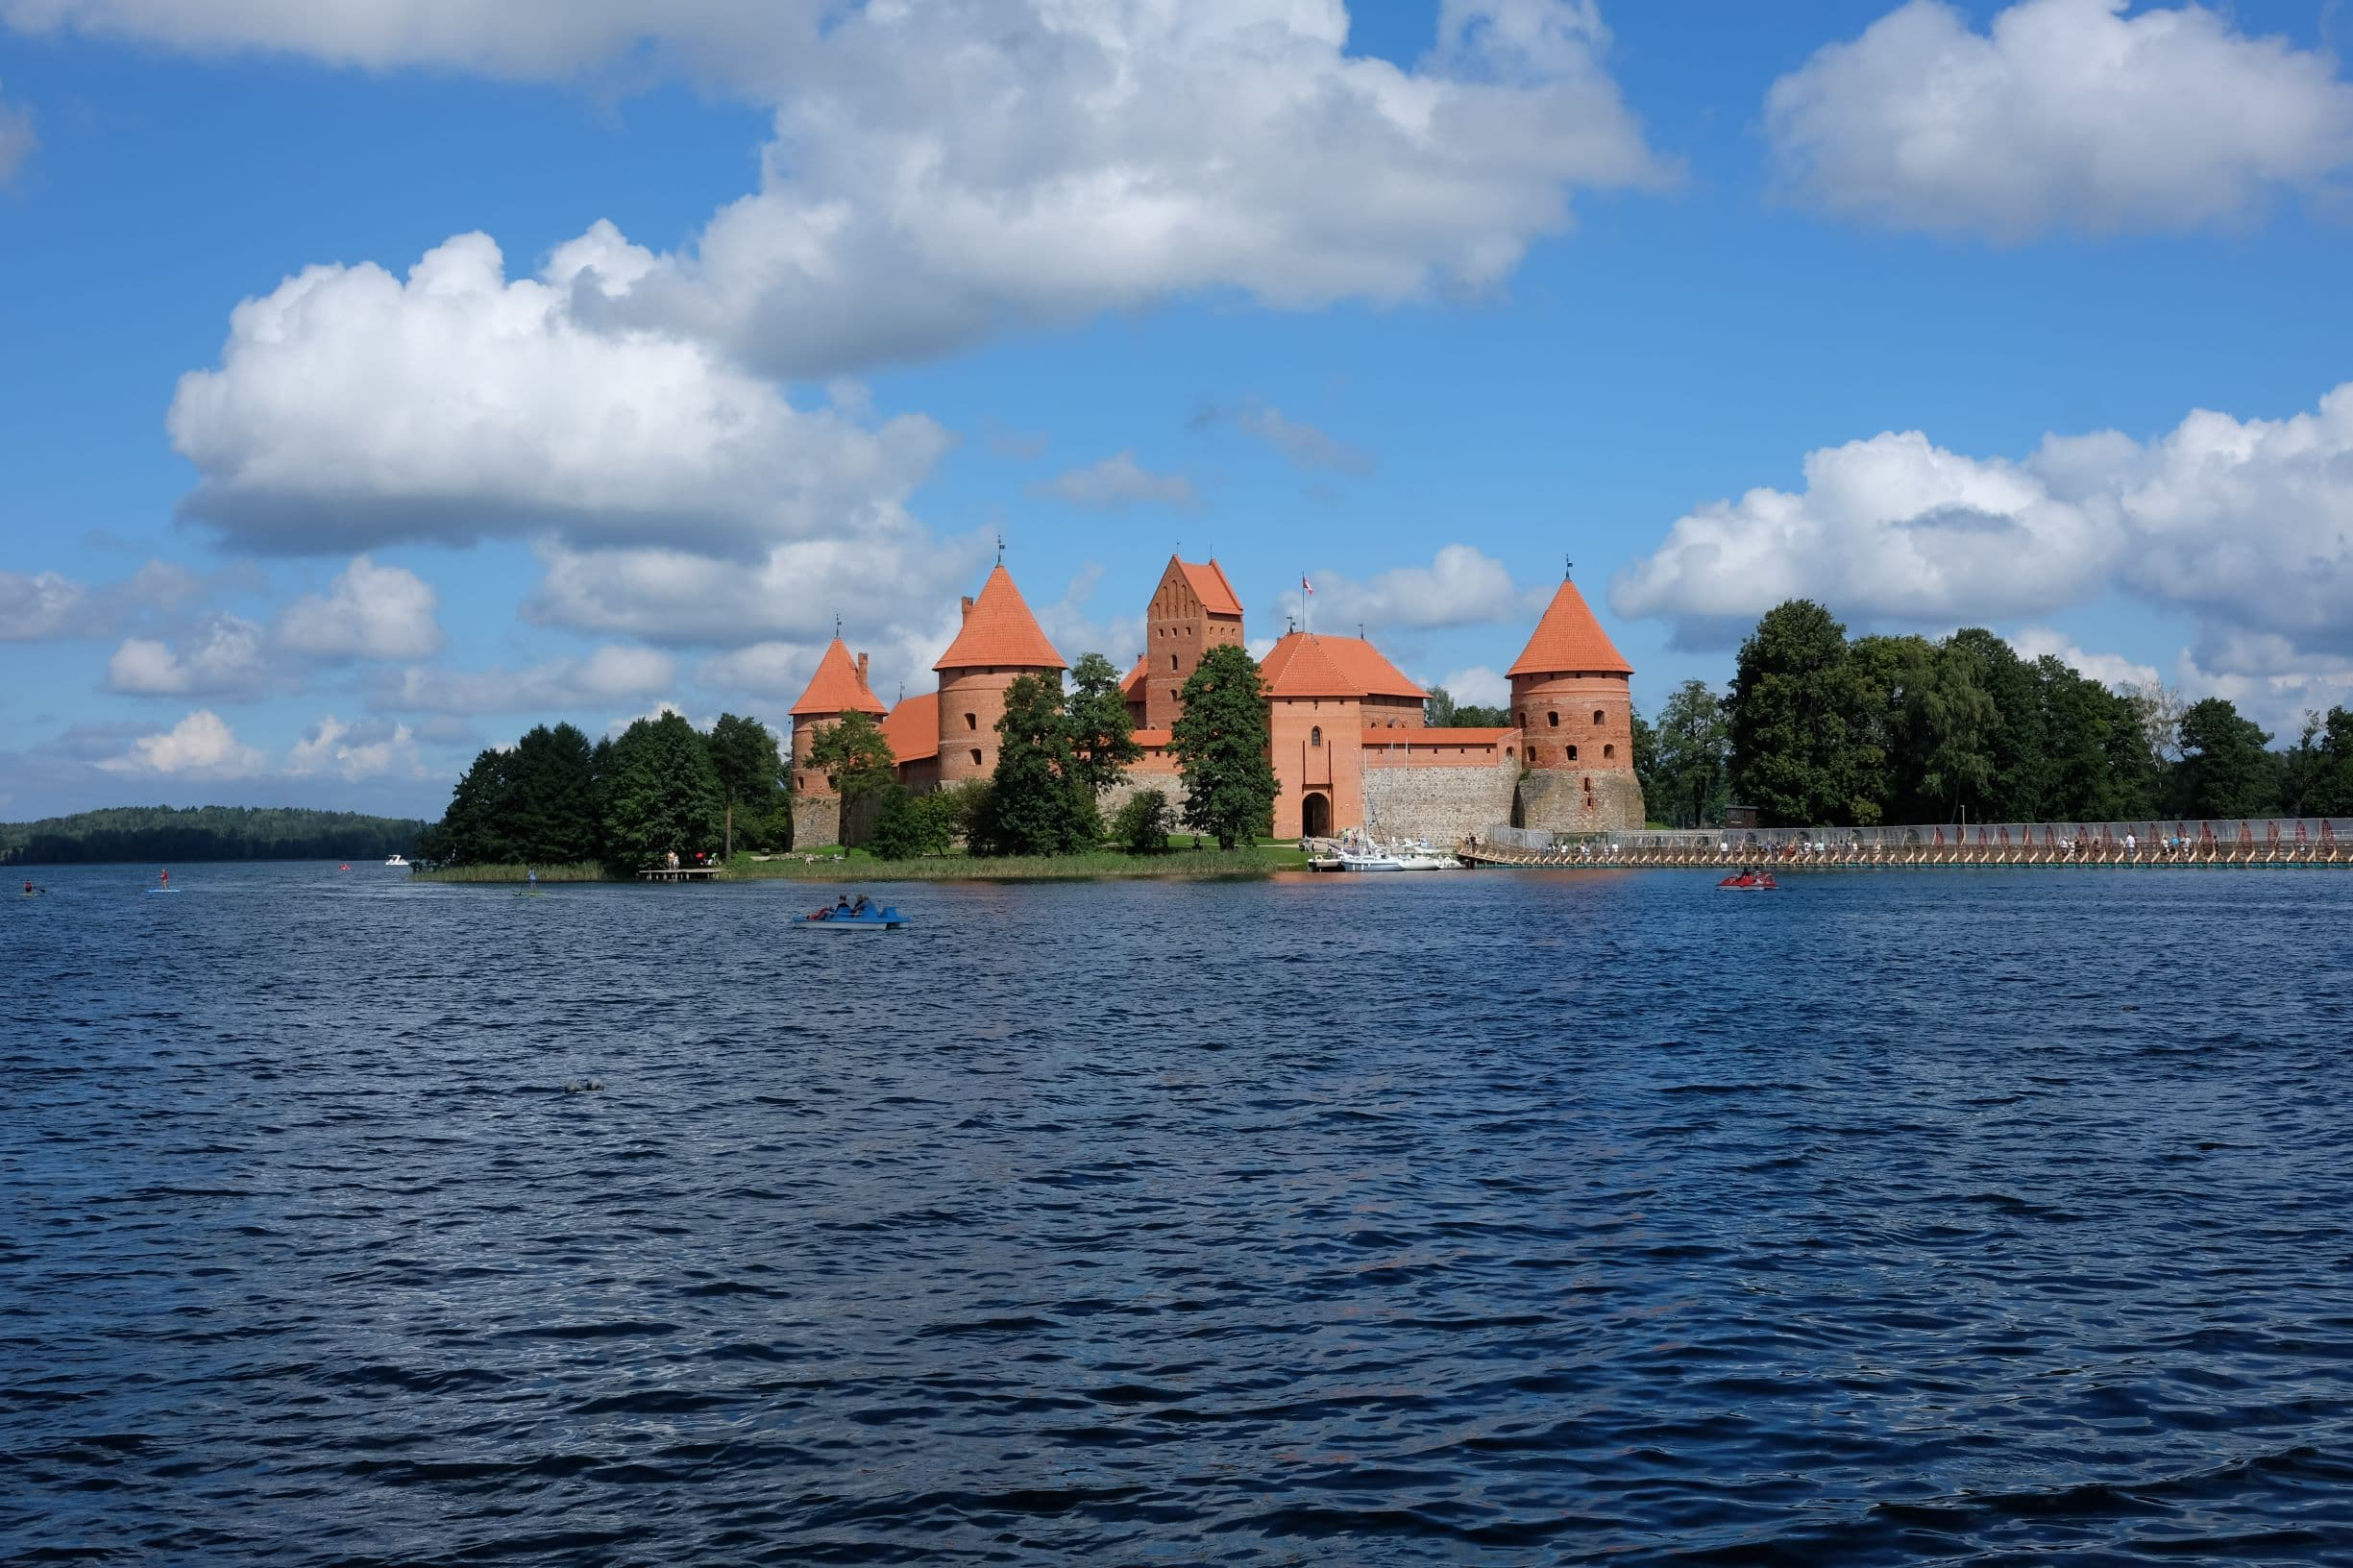 One of the must sees in Lithuania - red brick Trakai castle in the middle of the lake